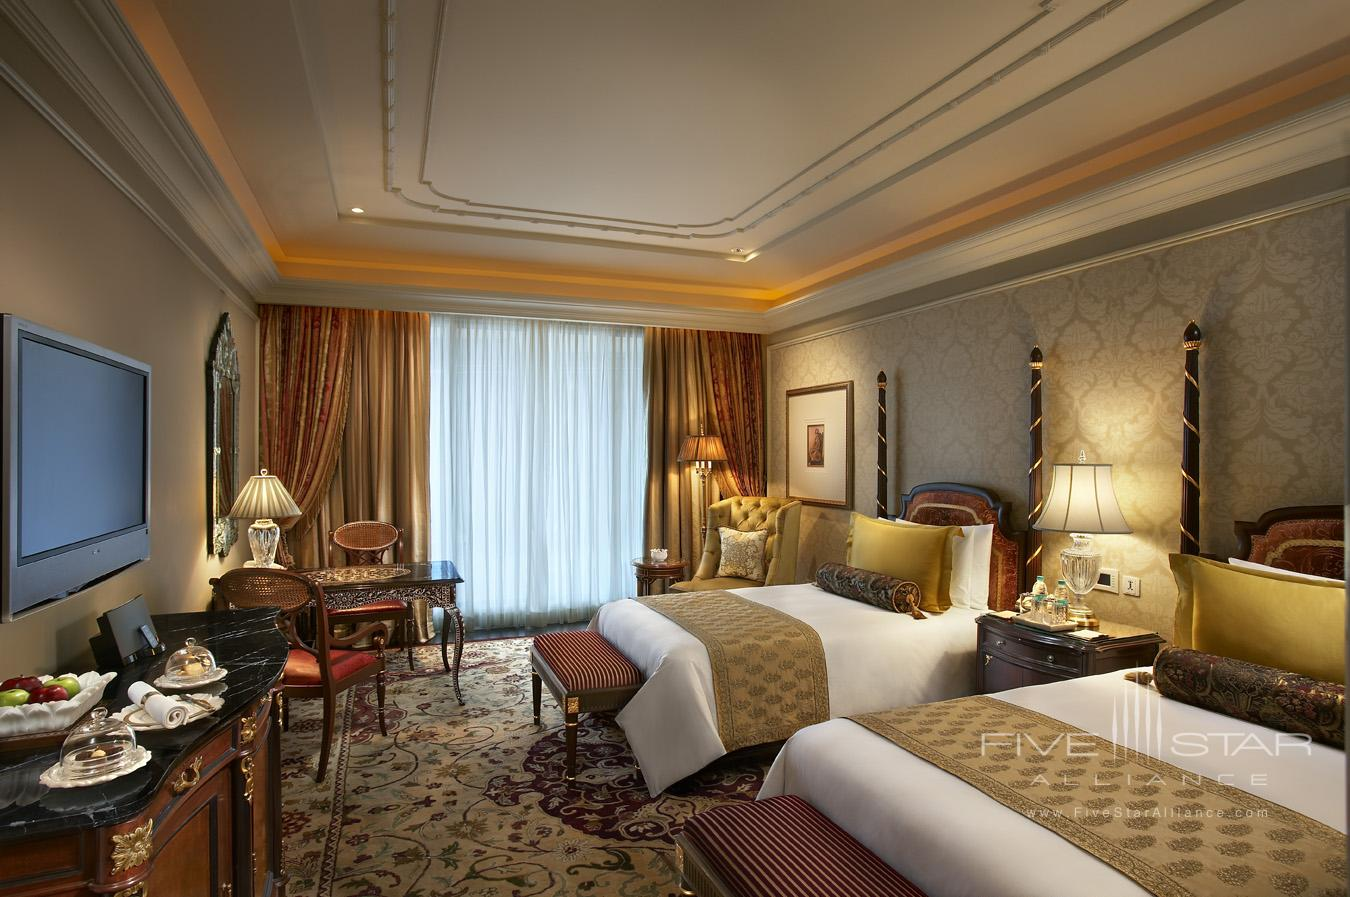 Grand Deluxe Twin Room at Leela Palace New Delhi